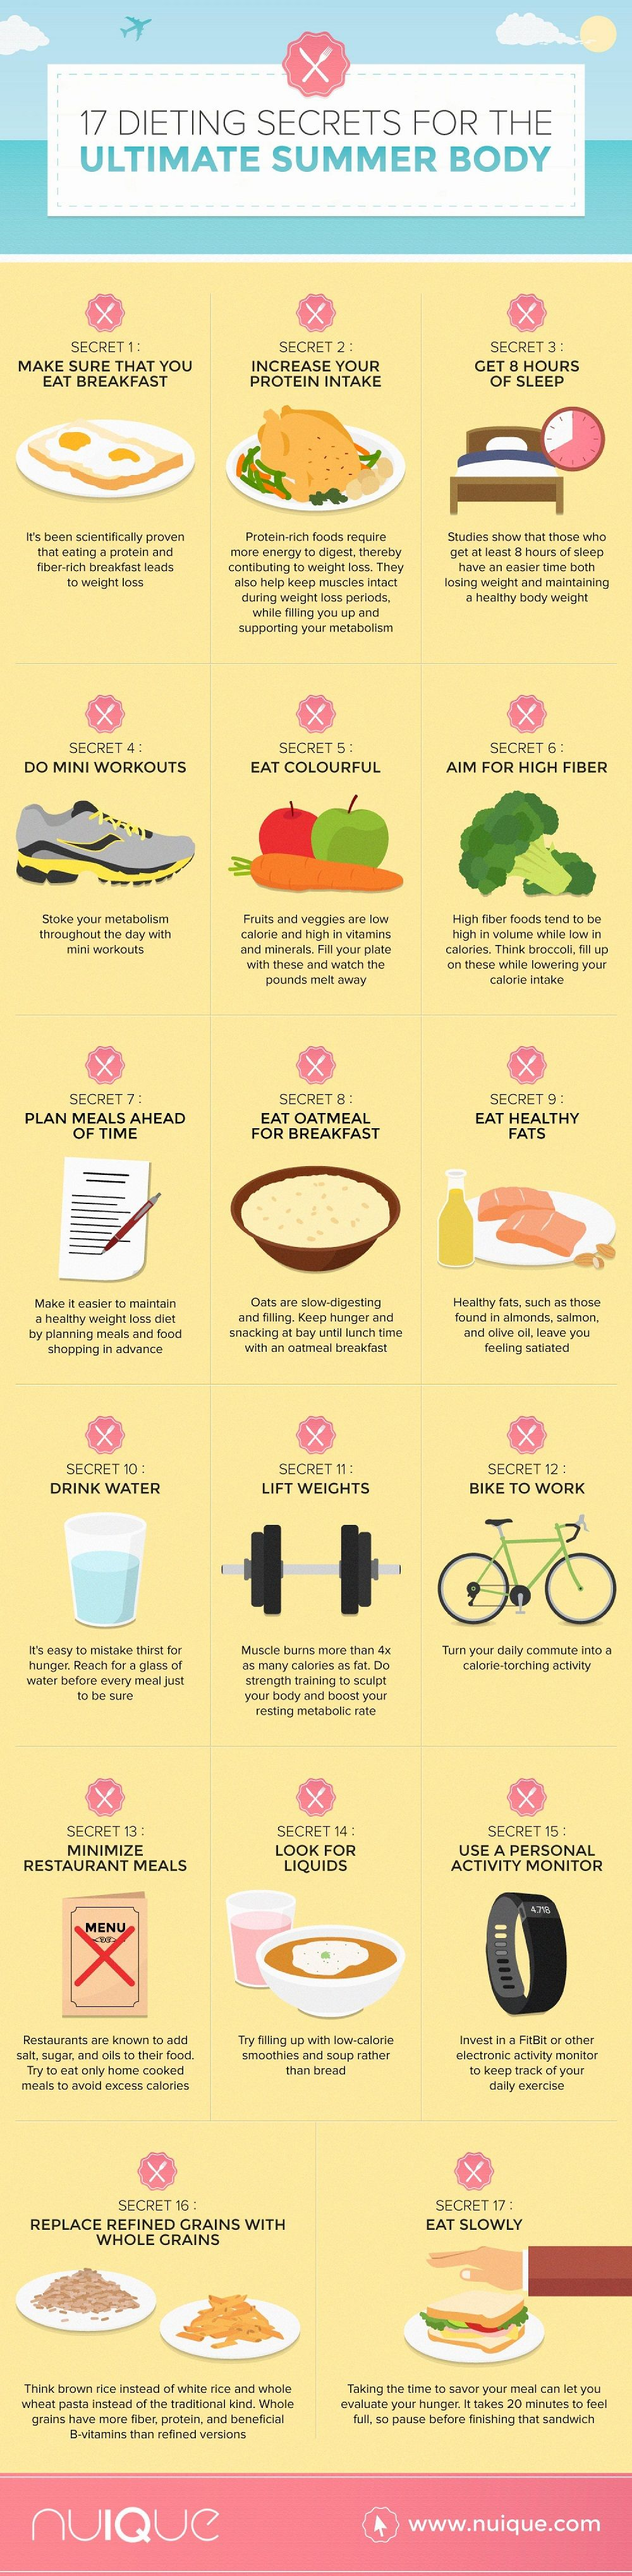 17 Dieting Secrets for the Ultimate Summer Body